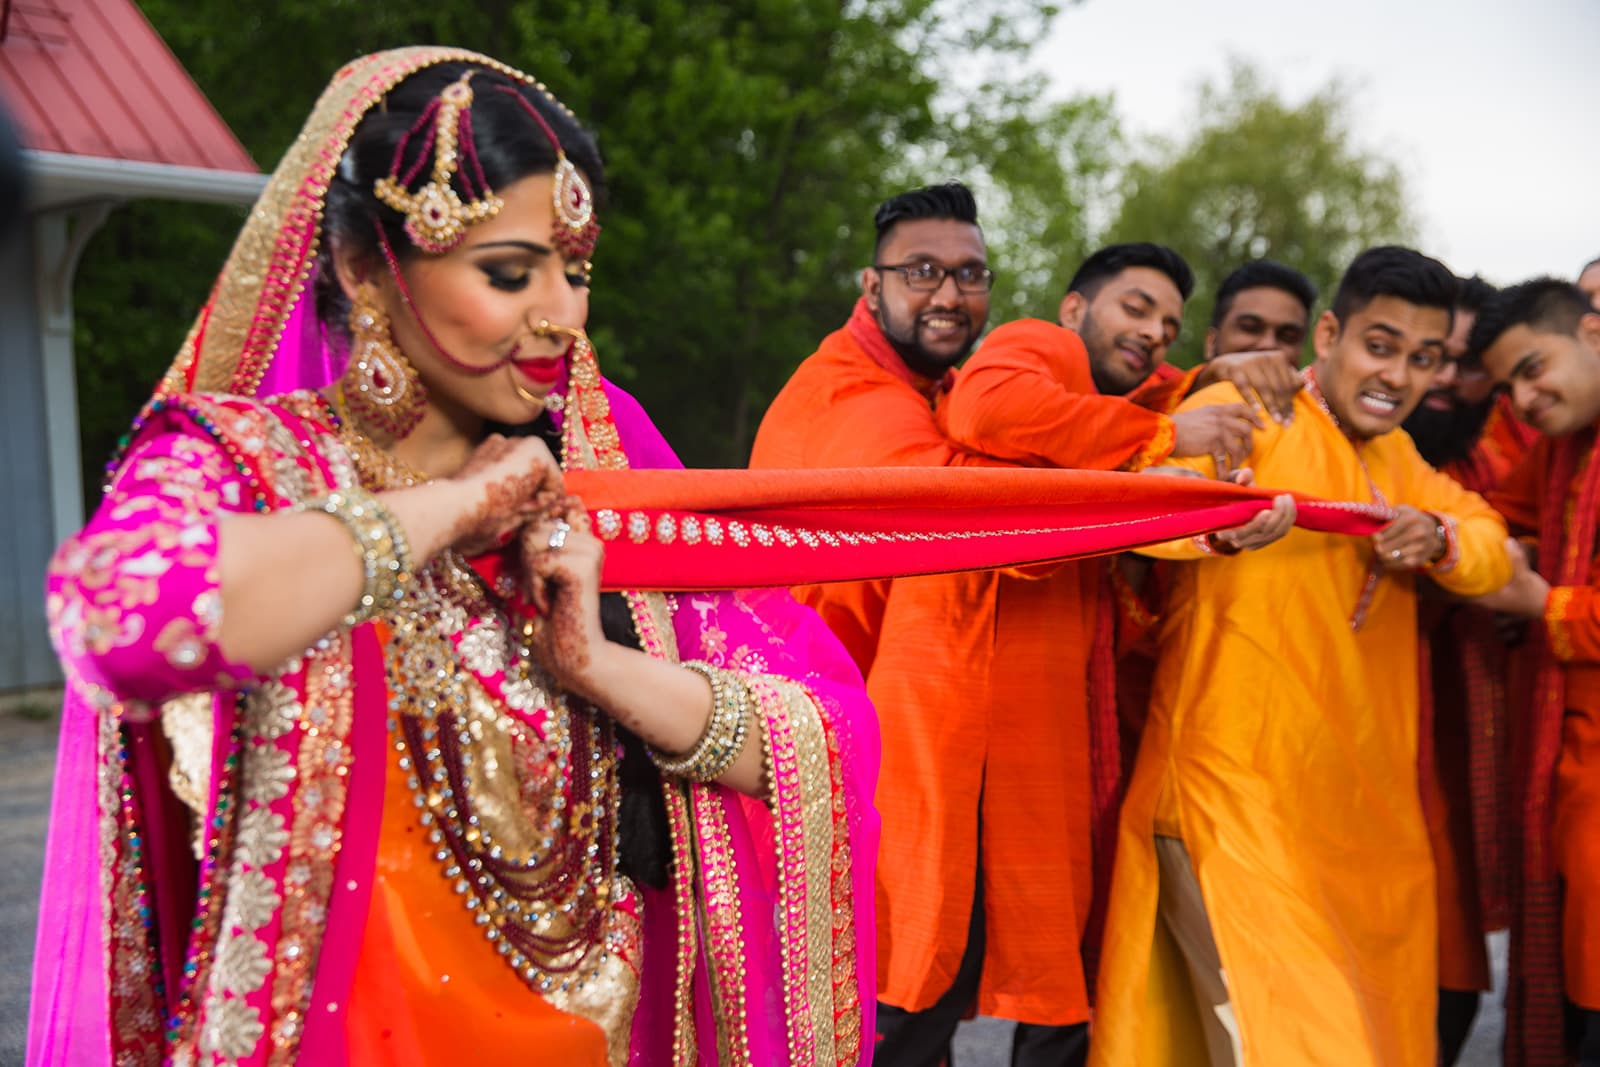 This bangla couple kept tradition alive in their haldi and sangeet ceremonies 36